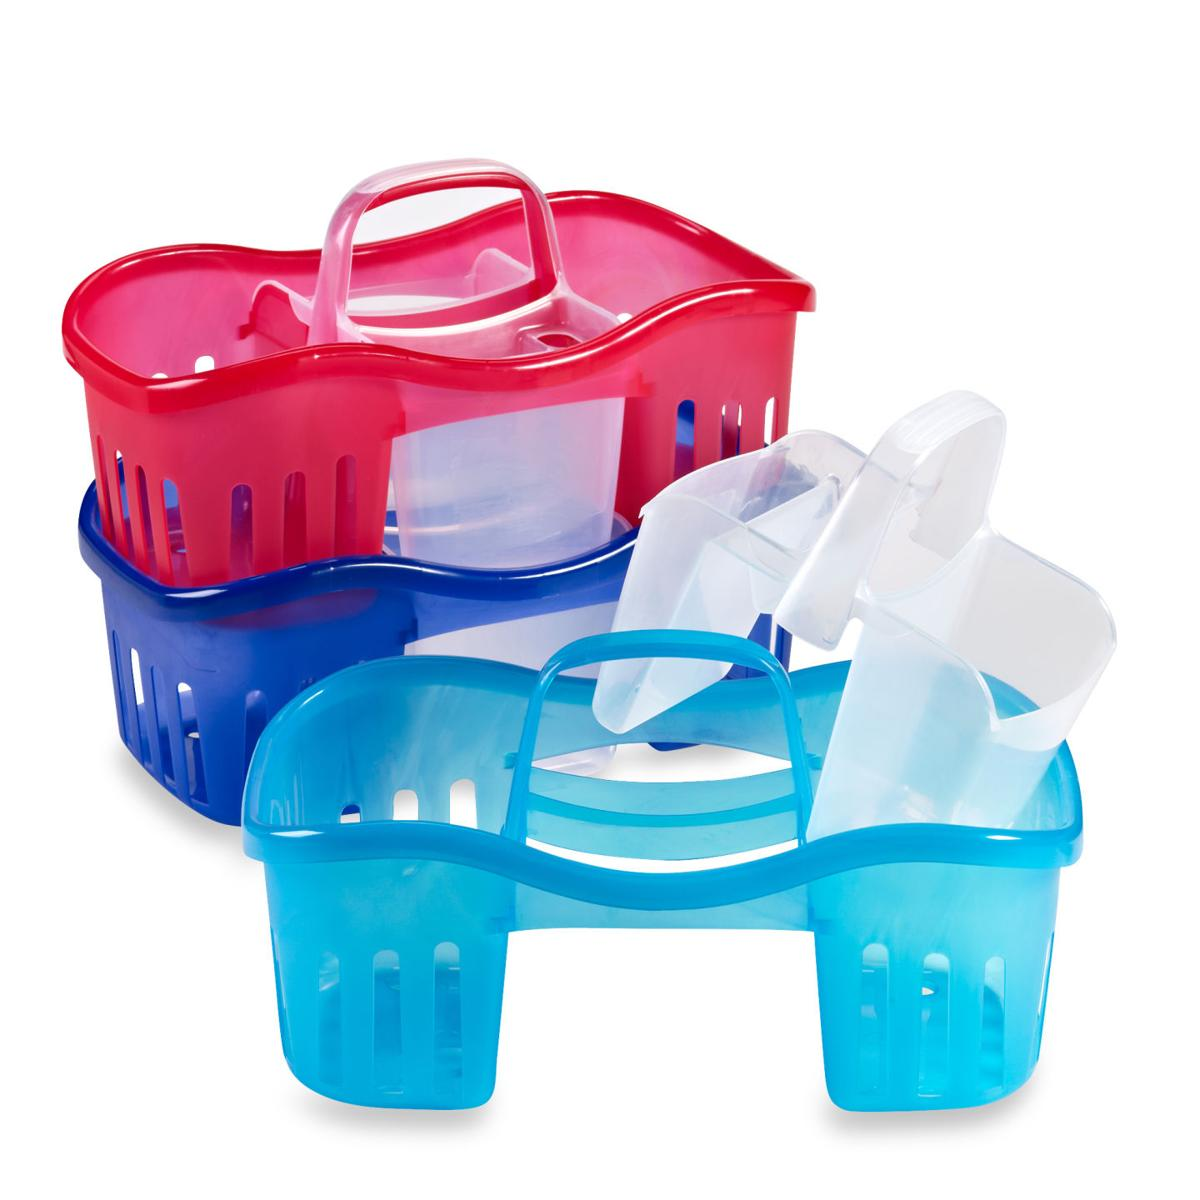 Bed Bath And Beyond Shower Caddy bring it with: shower totes and caddies | | globegazette